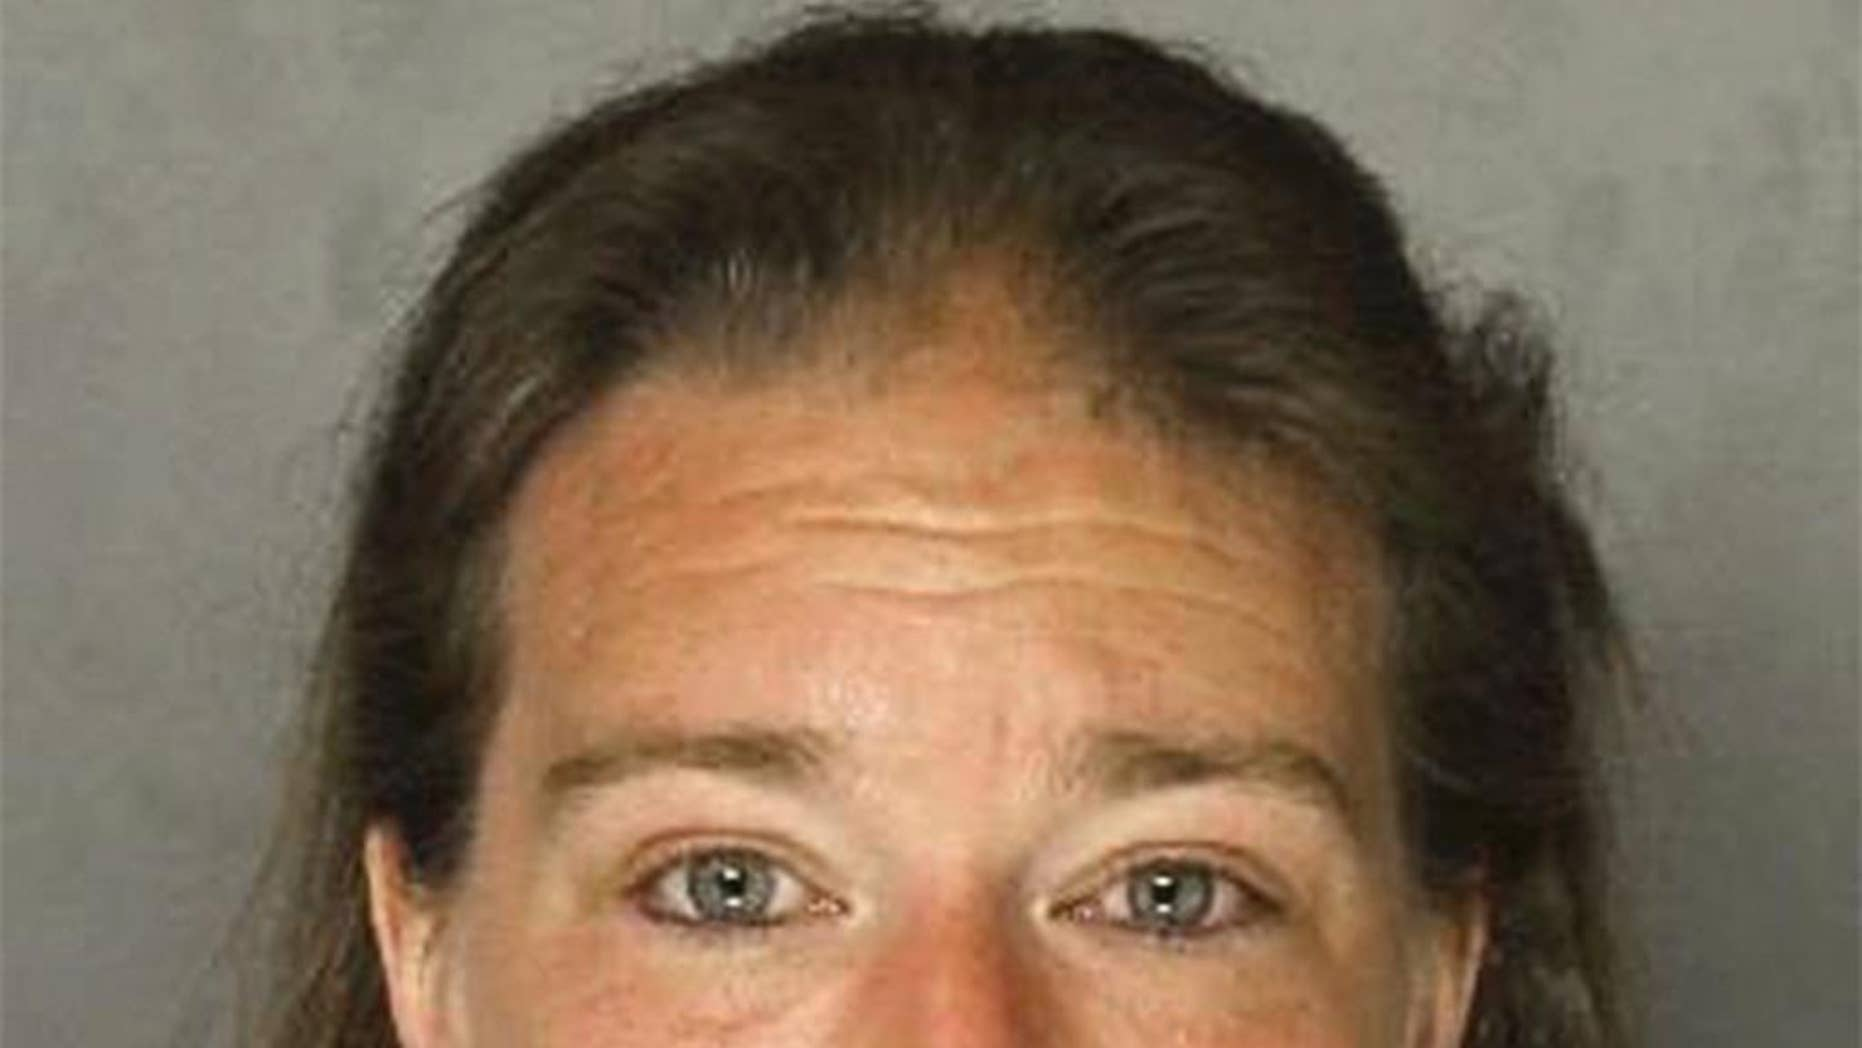 This photo provided by the Allegheny County Police Department in Pittsburgh shows Teresa Drum of Frazer Township, Pa., charged Tuesday, Feb. 28, 2017, with criminal homicide after police say she fatally shot her husband Dennis Drum Sr. on Monday, Feb. 27,  then took a cellphone photo of his body and showered before calling 911. Police say she told officers her husband complained she burned a casserole and drank his last beer, then shot himself as she called 911. But police say the photo was taken 11 minutes before the 911 call, and there was no gun in the body's hand in the photo. (Allegheny County Police Department via AP)